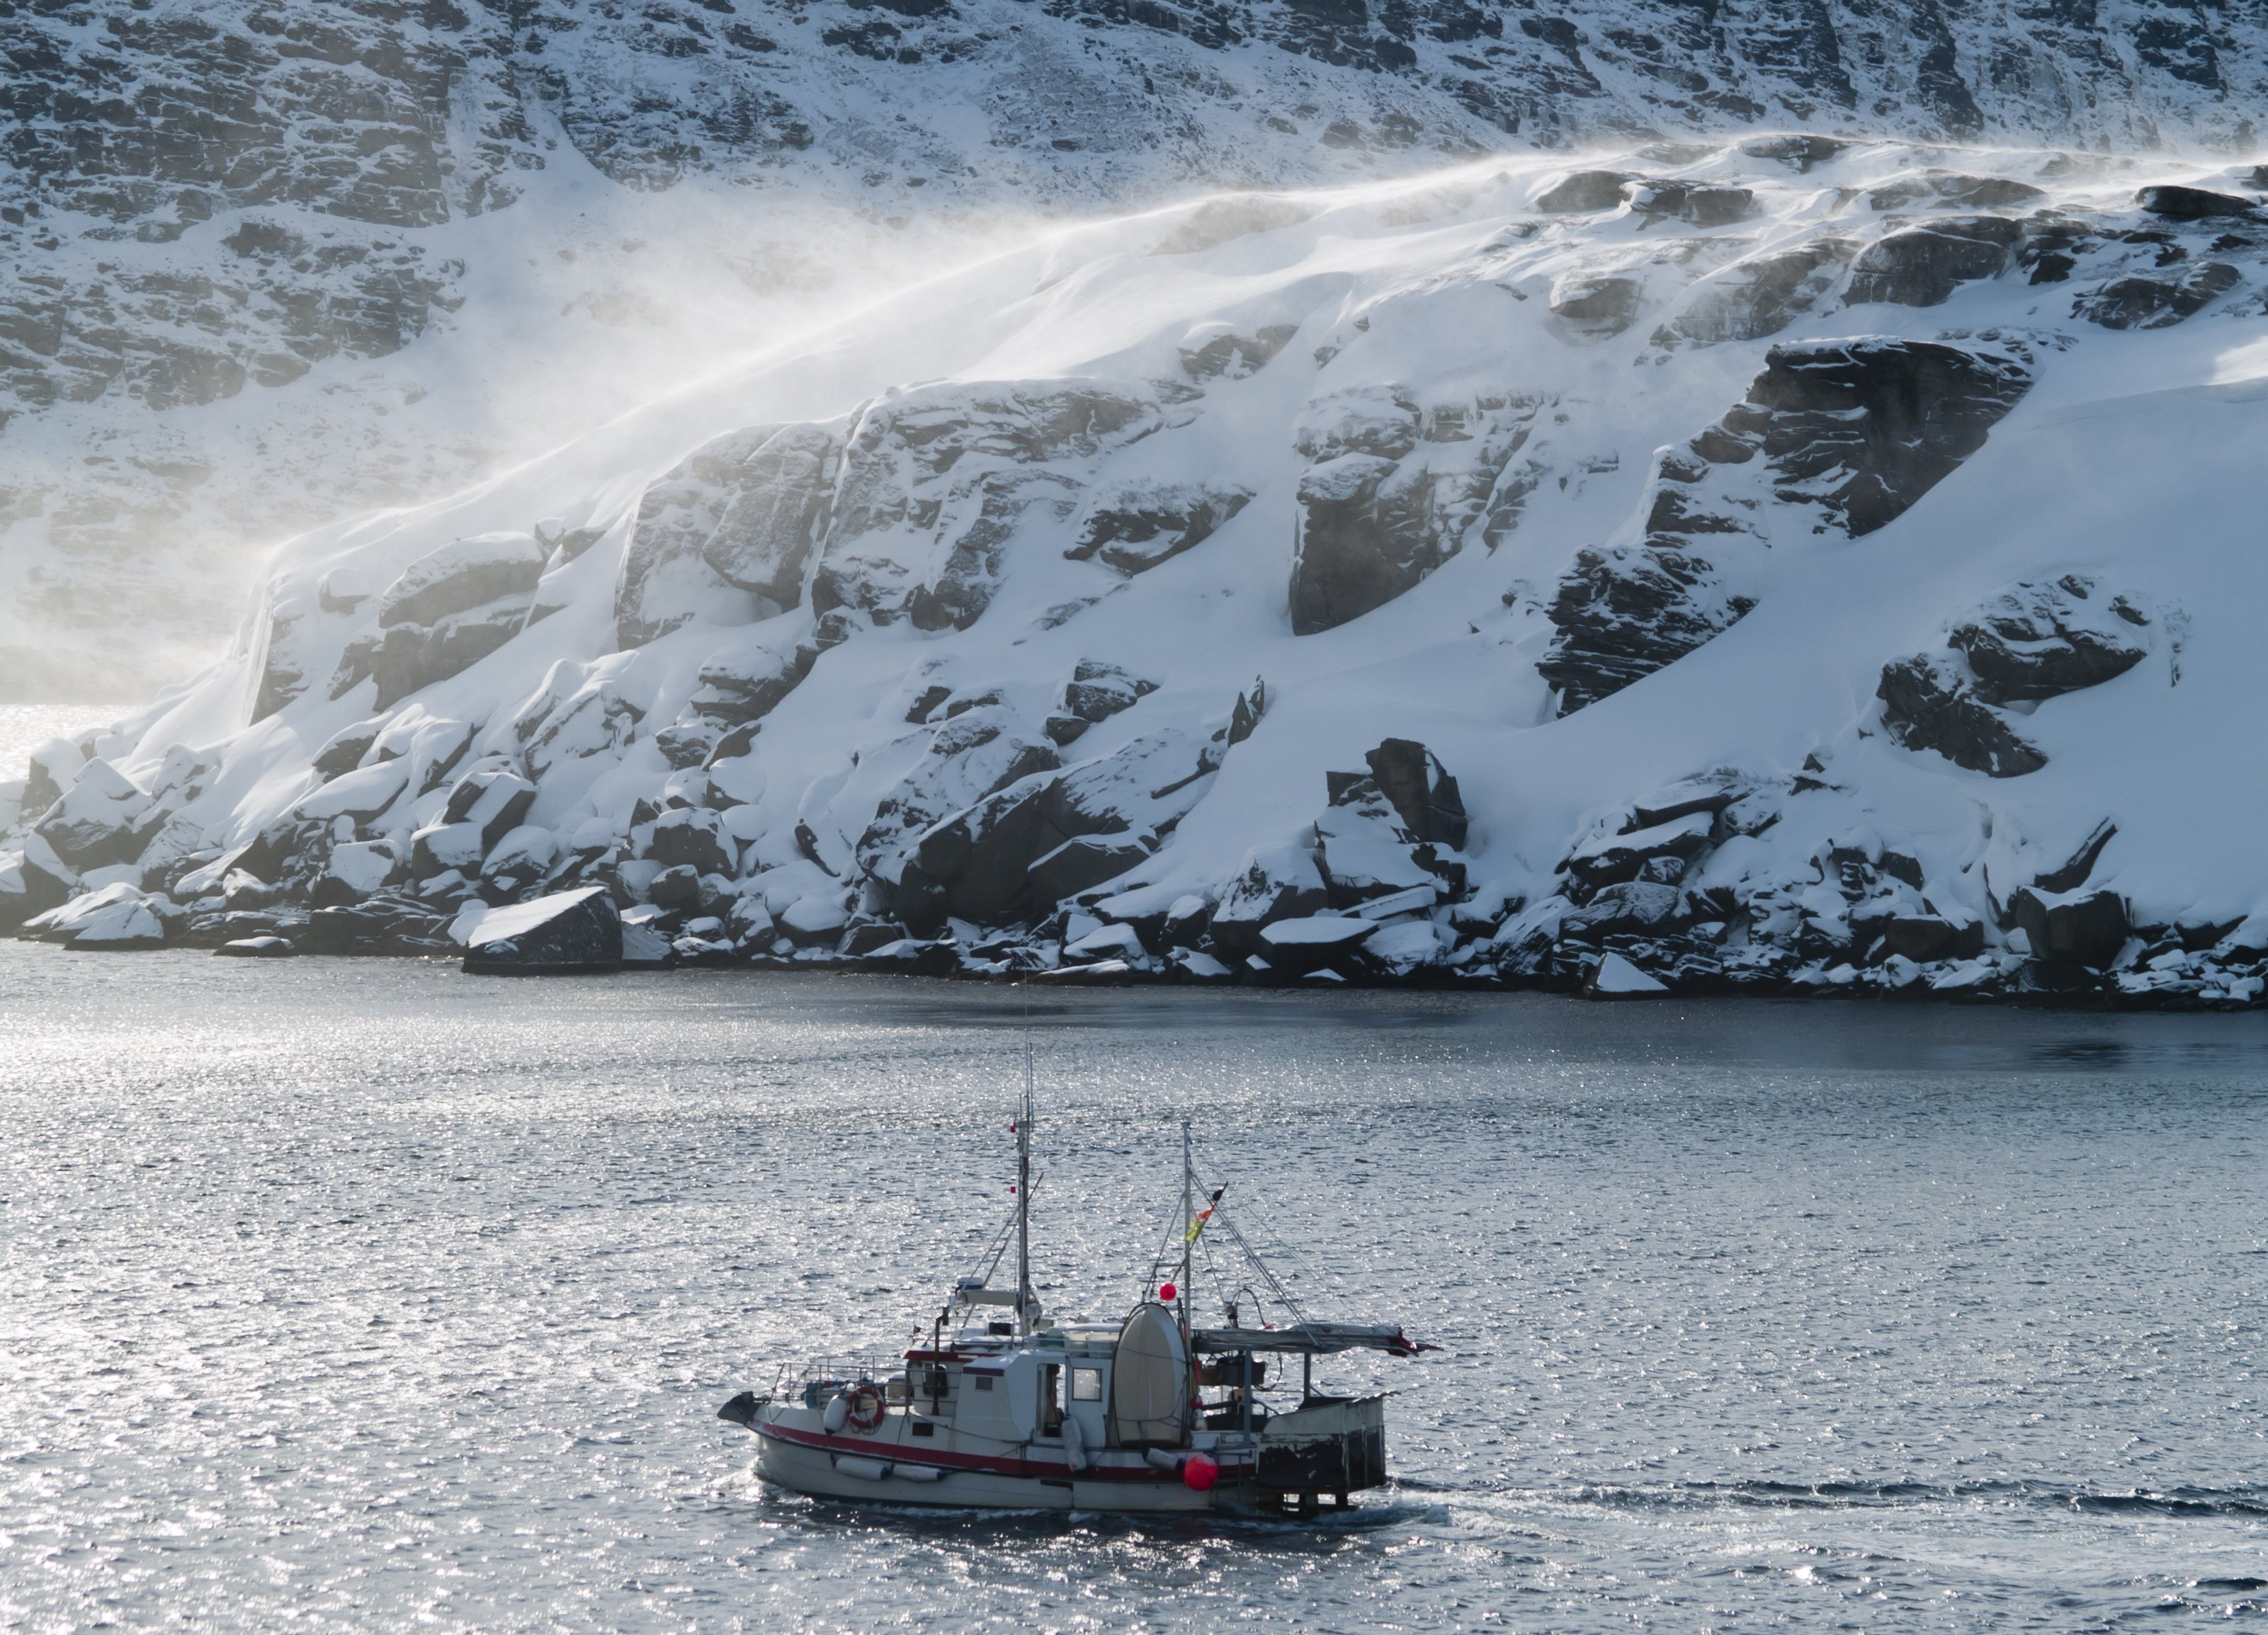 Fishing boat on the Barents Sea in Norway's Arctic region in winter. Blowing snow on the rocky headland behind. (Getty)